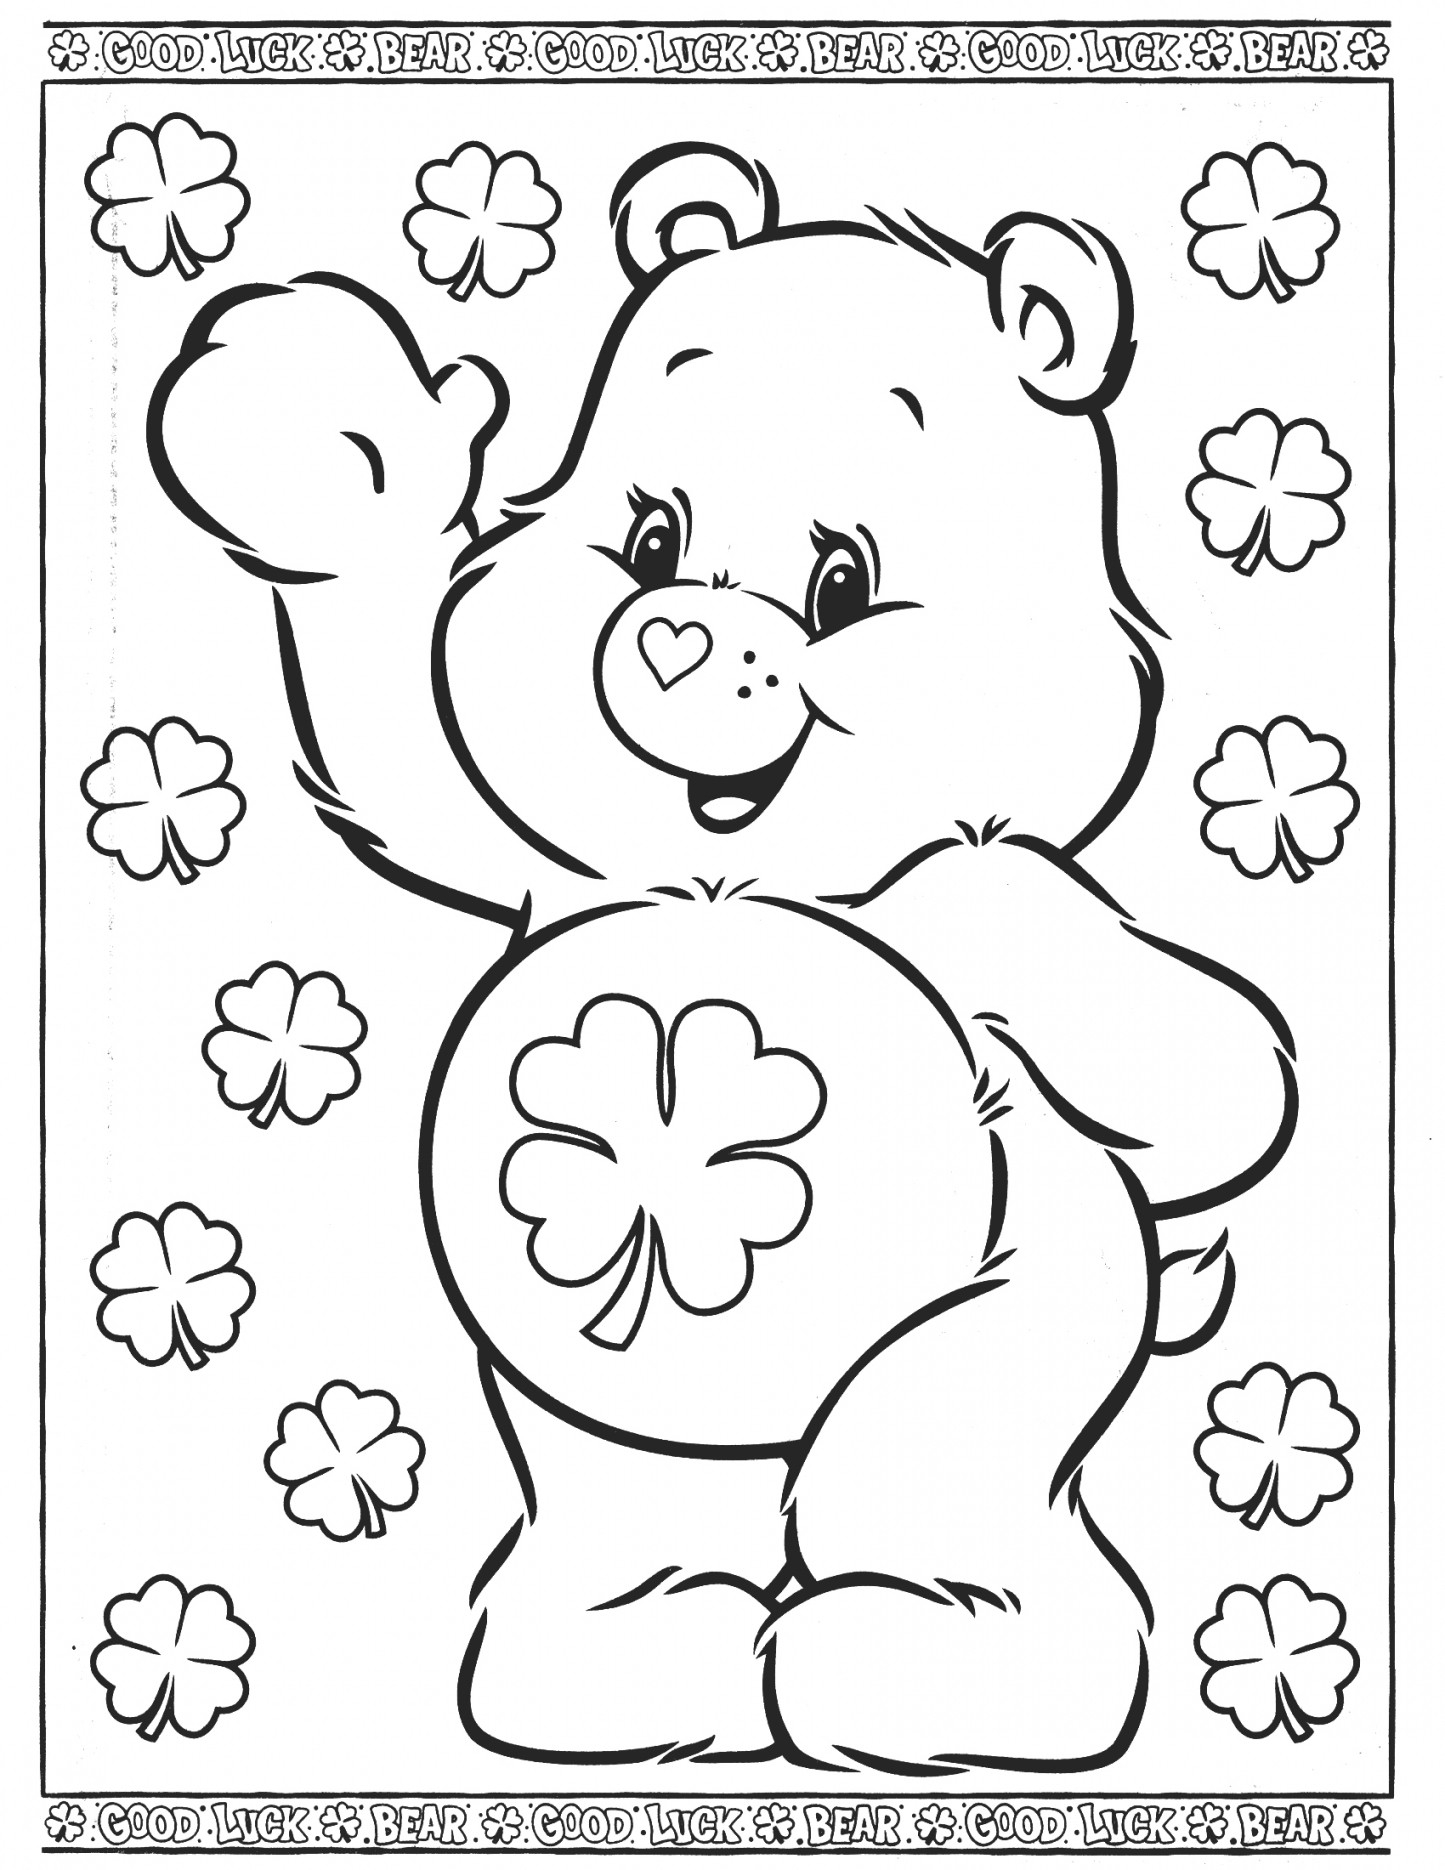 Care Bear Coloring Pages Elegant Care Bears Coloring Pages Ruva